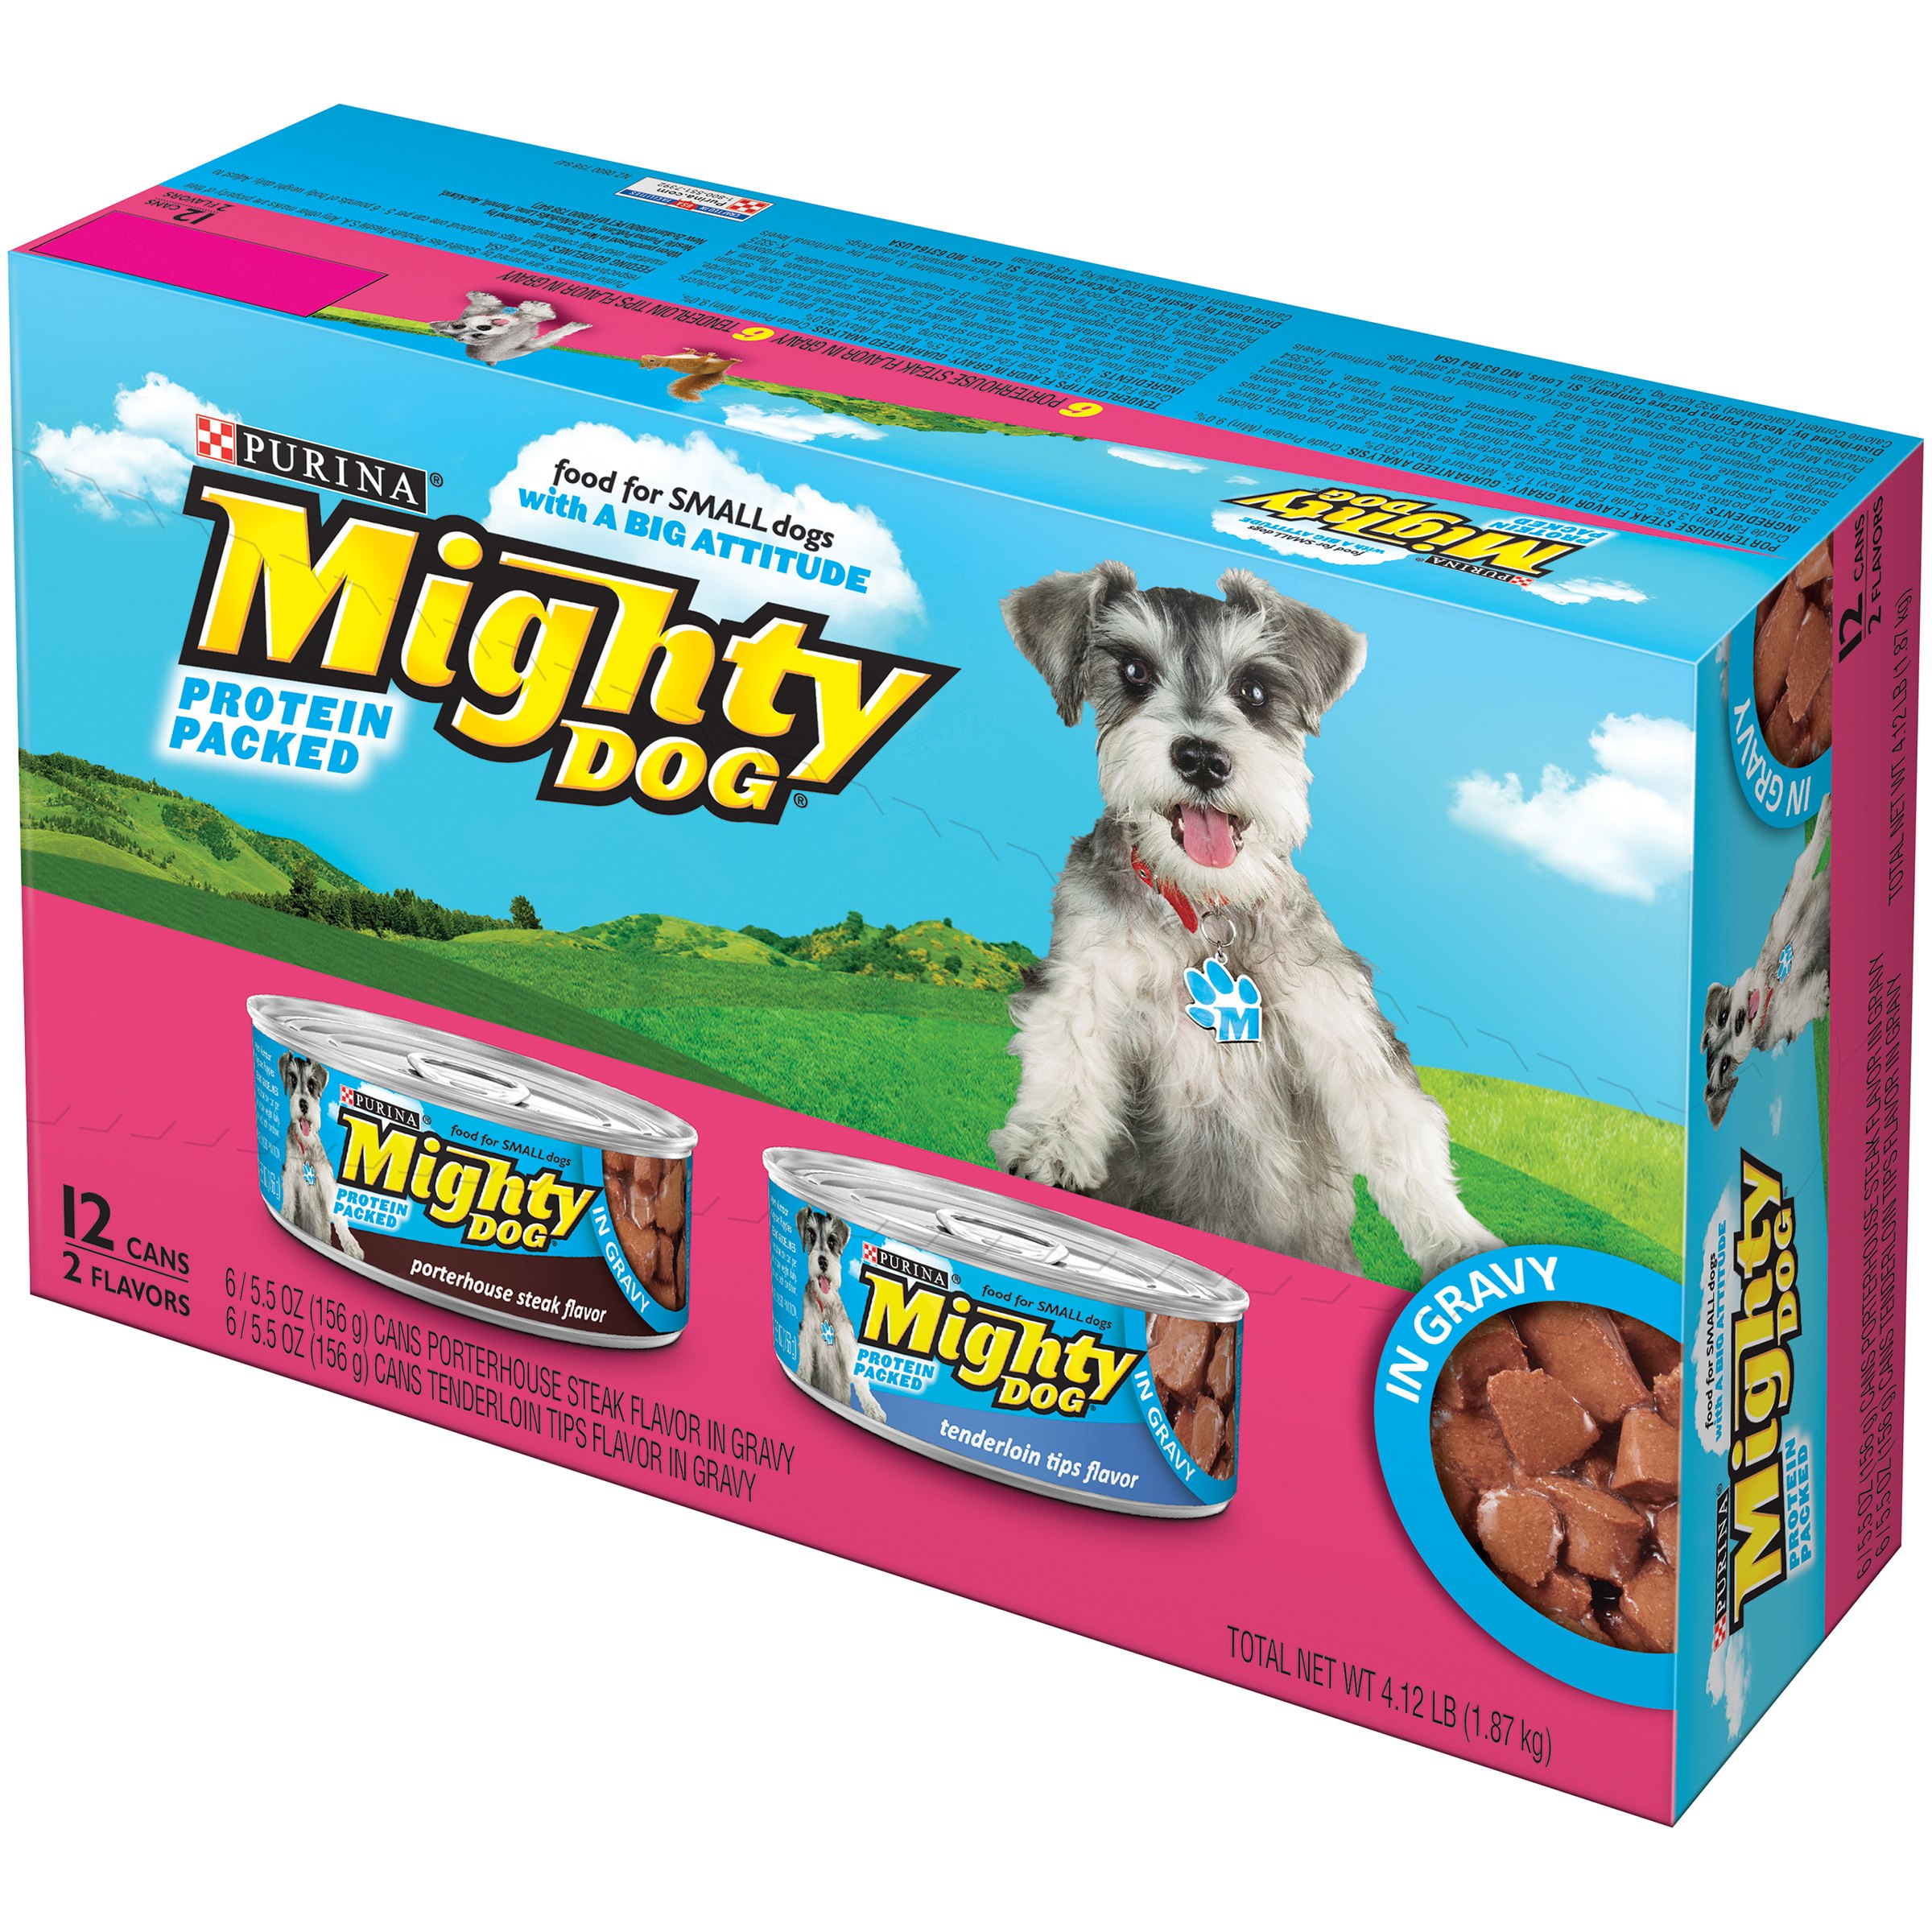 Purina Mighty Dog Dog Food in Gravy Variety Pack 12-5.5 oz. Cans